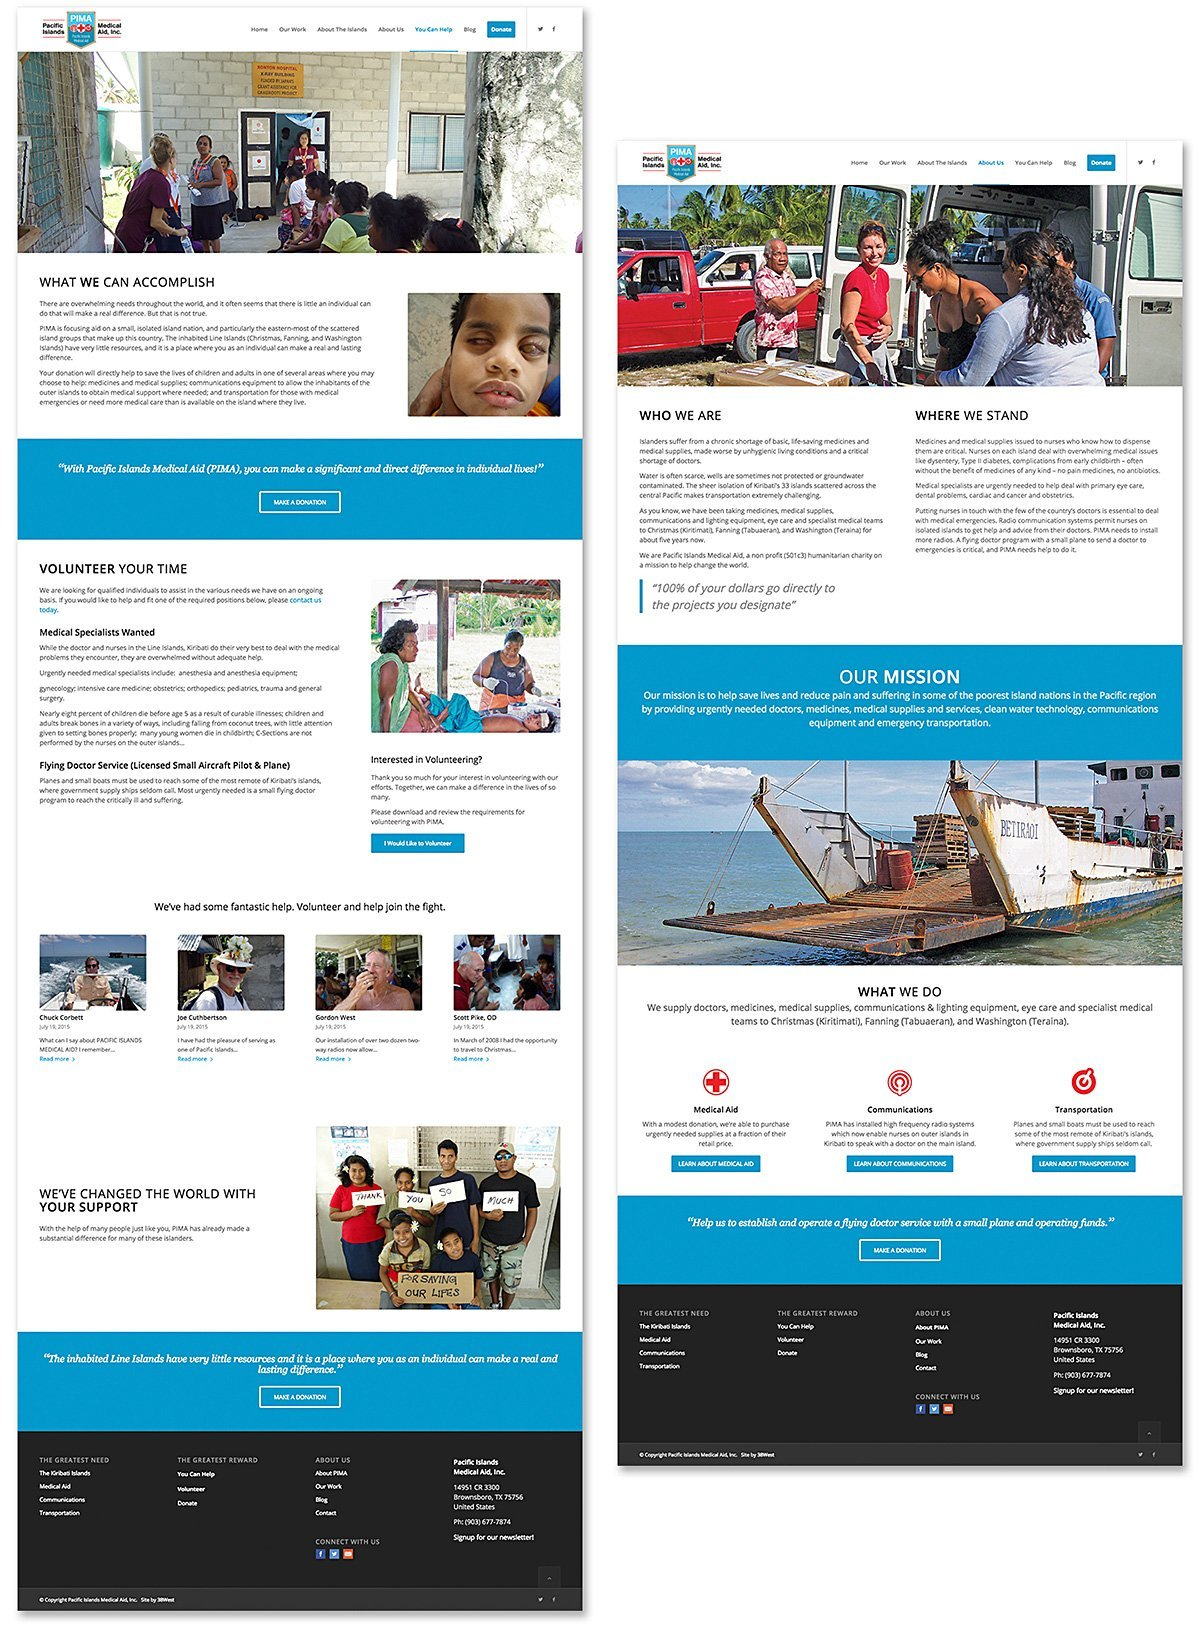 Responsive website design and print material for Pacific Islands Medical Aid, Brownsboro, TX | 38West Best Web Design & Creative Marketing Agency in Orange County, CA